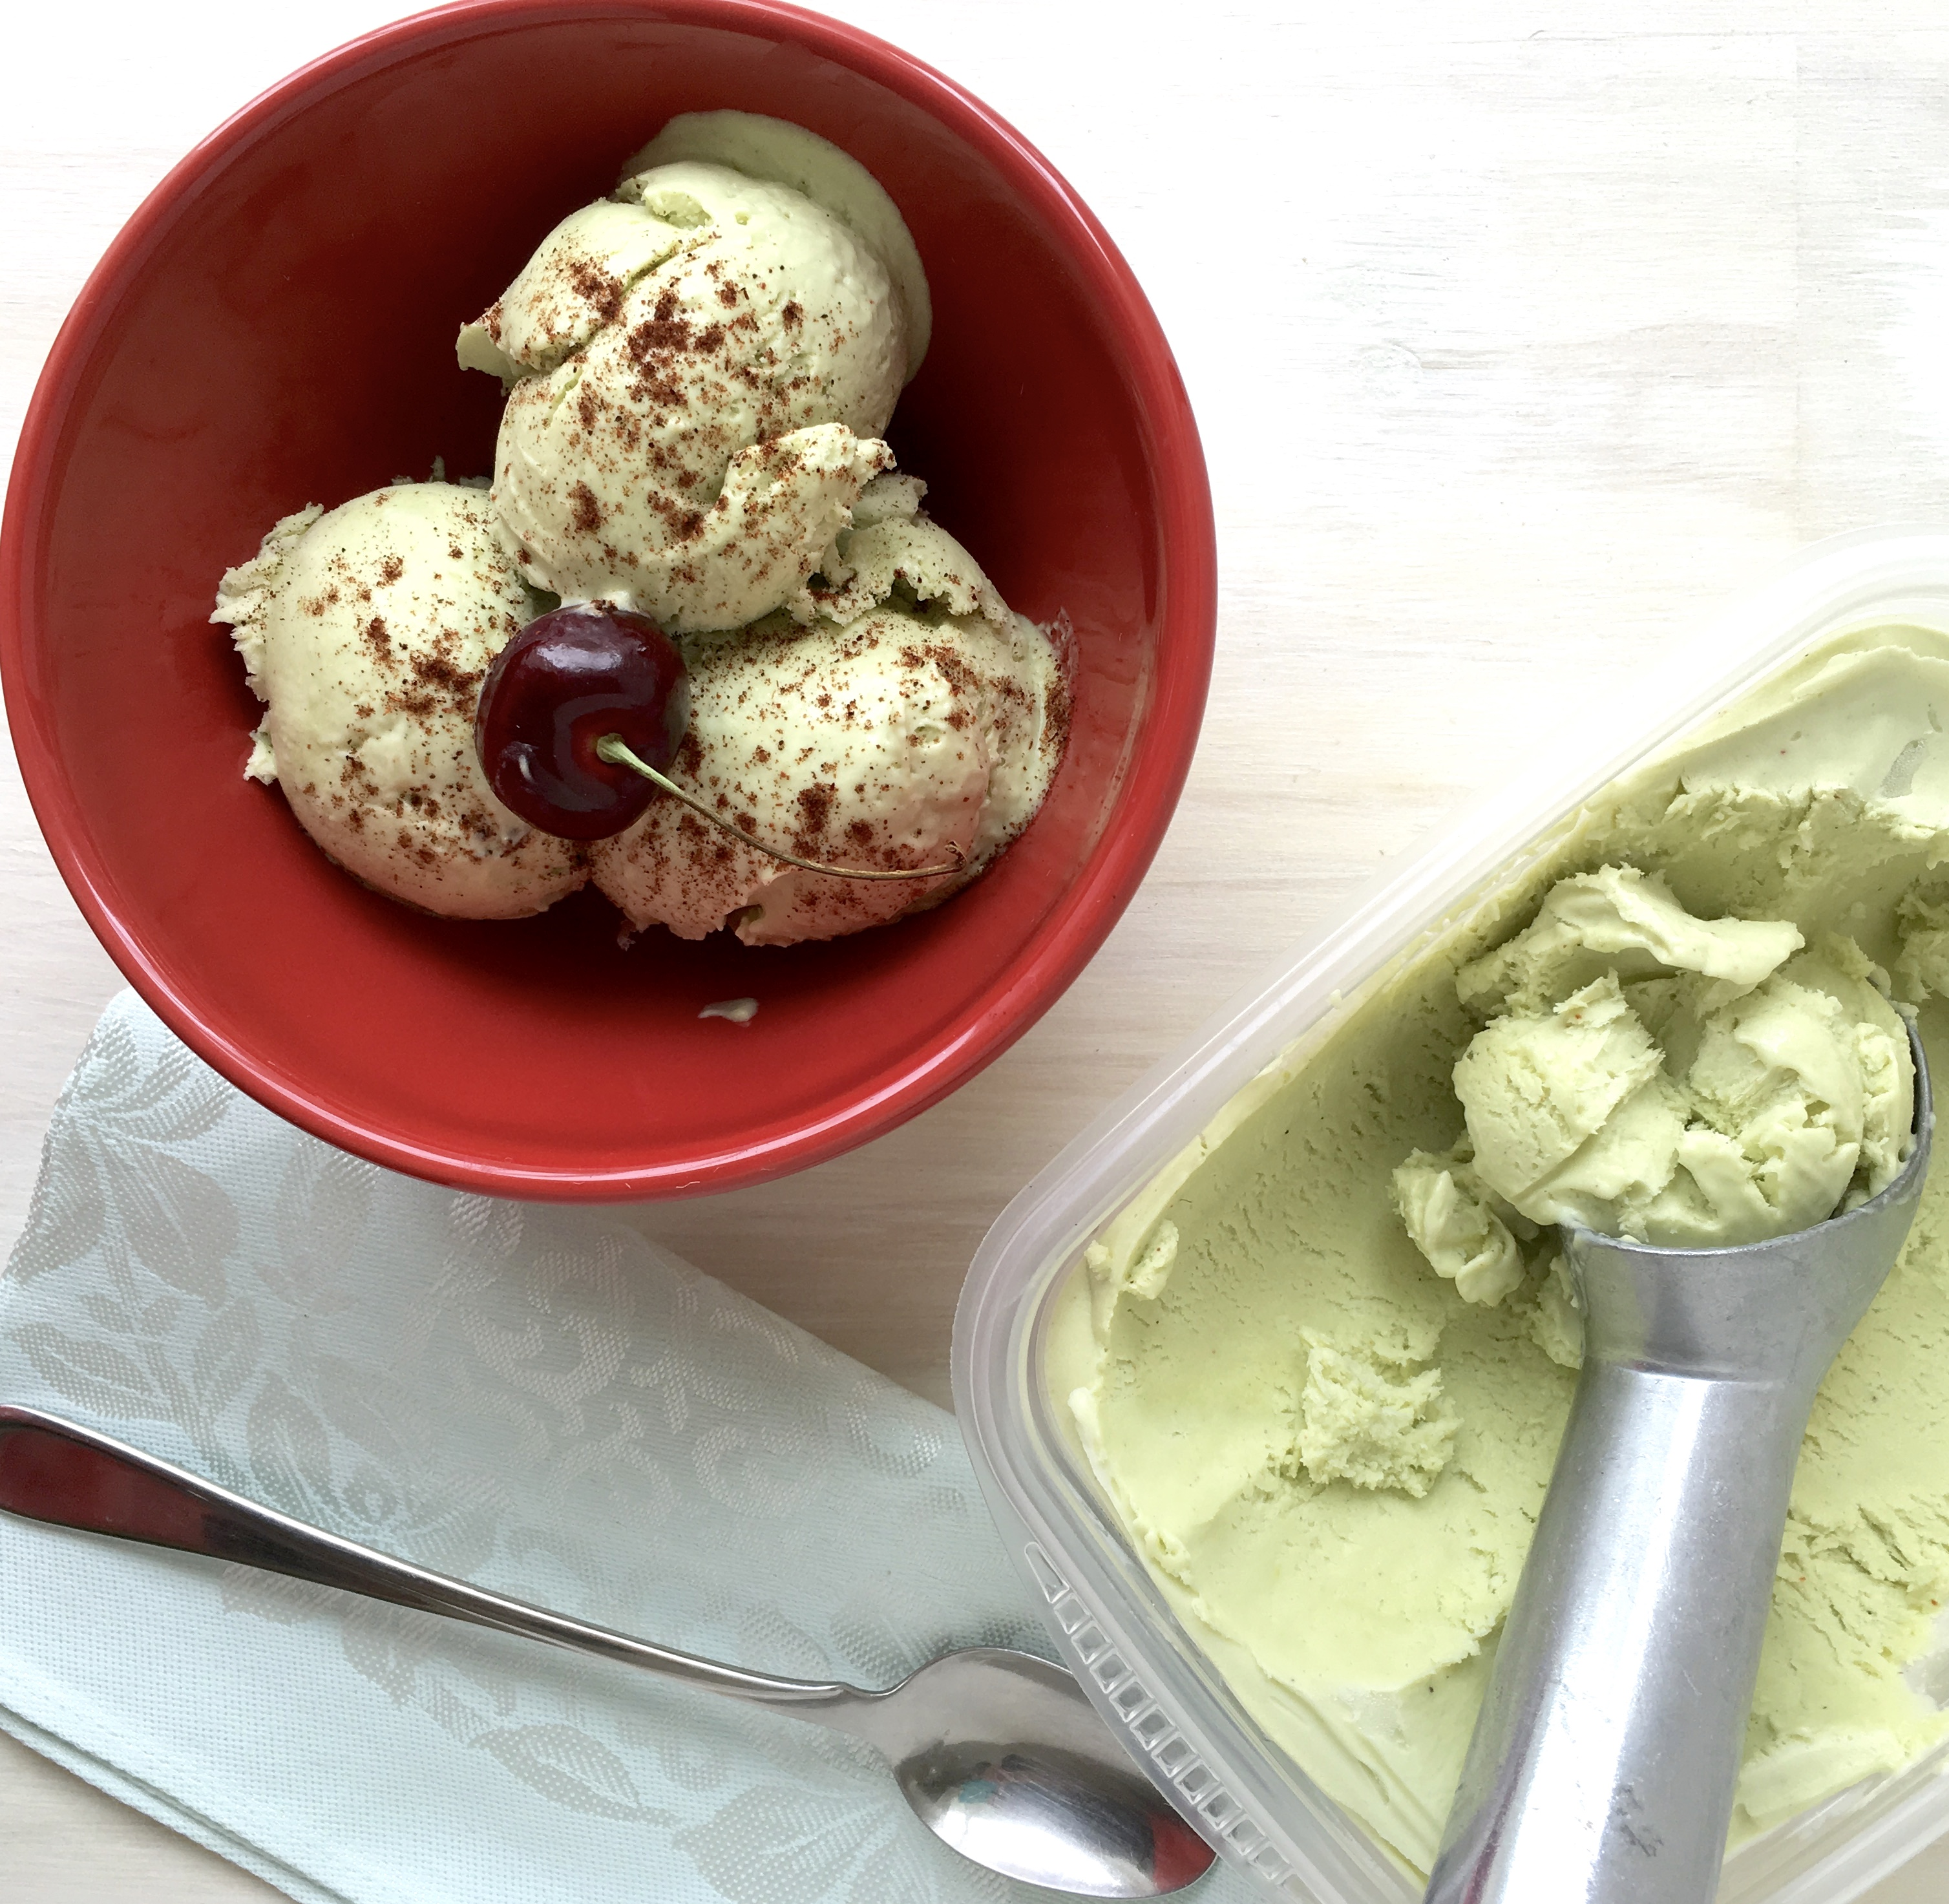 scoop of avocado ice cream in a bowl with chili powder and cherry